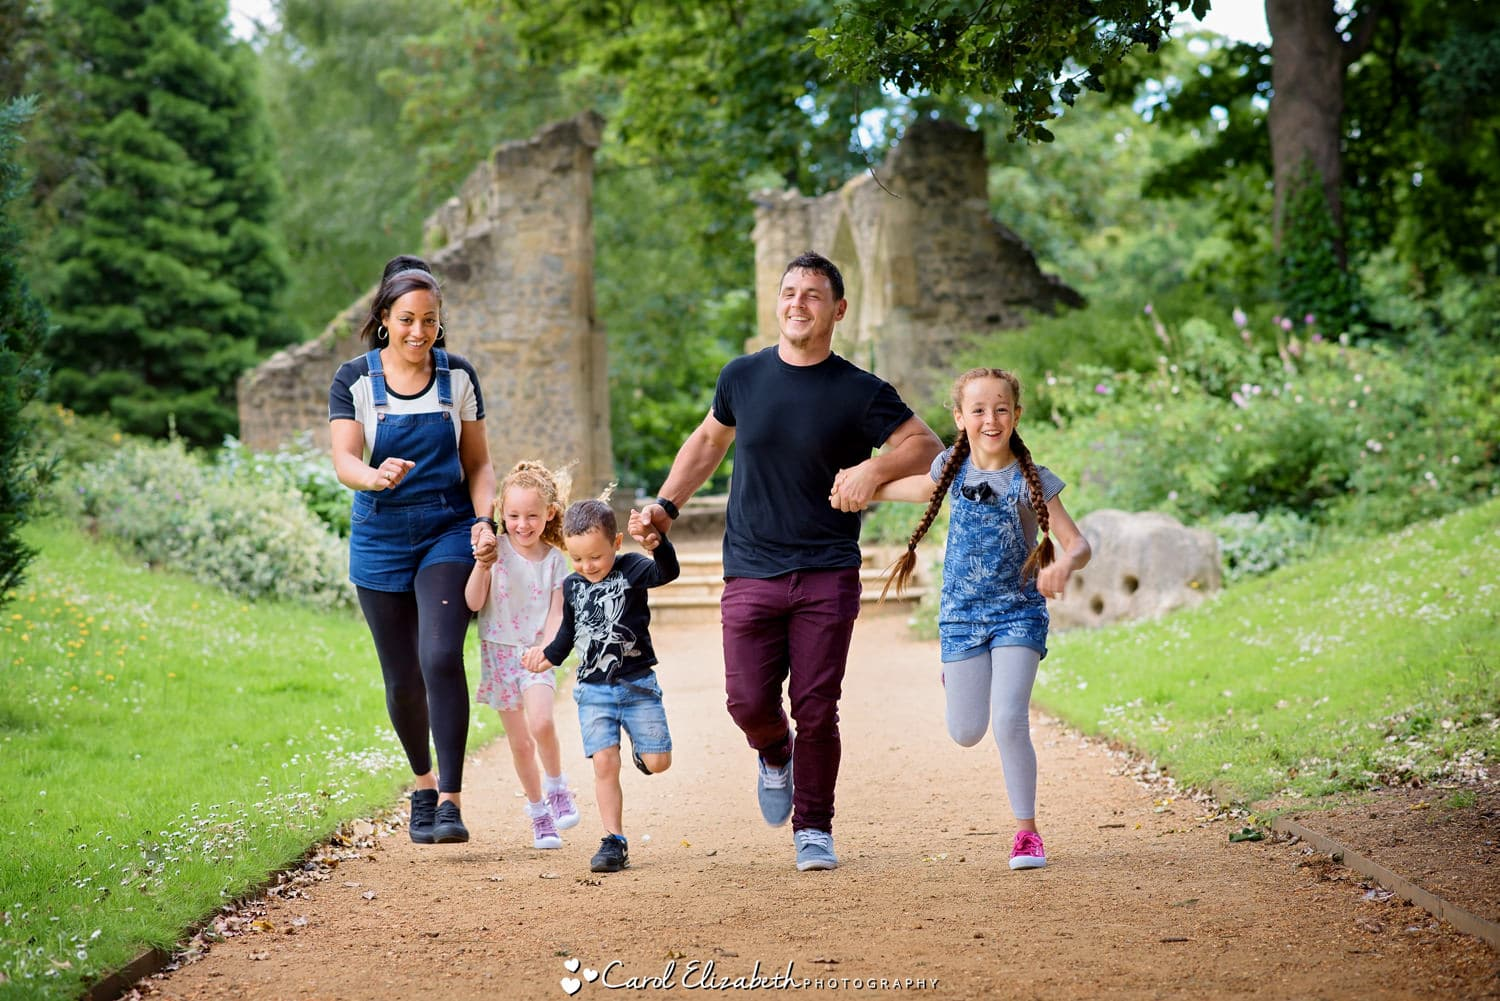 Fun family photoshoot Abingdon